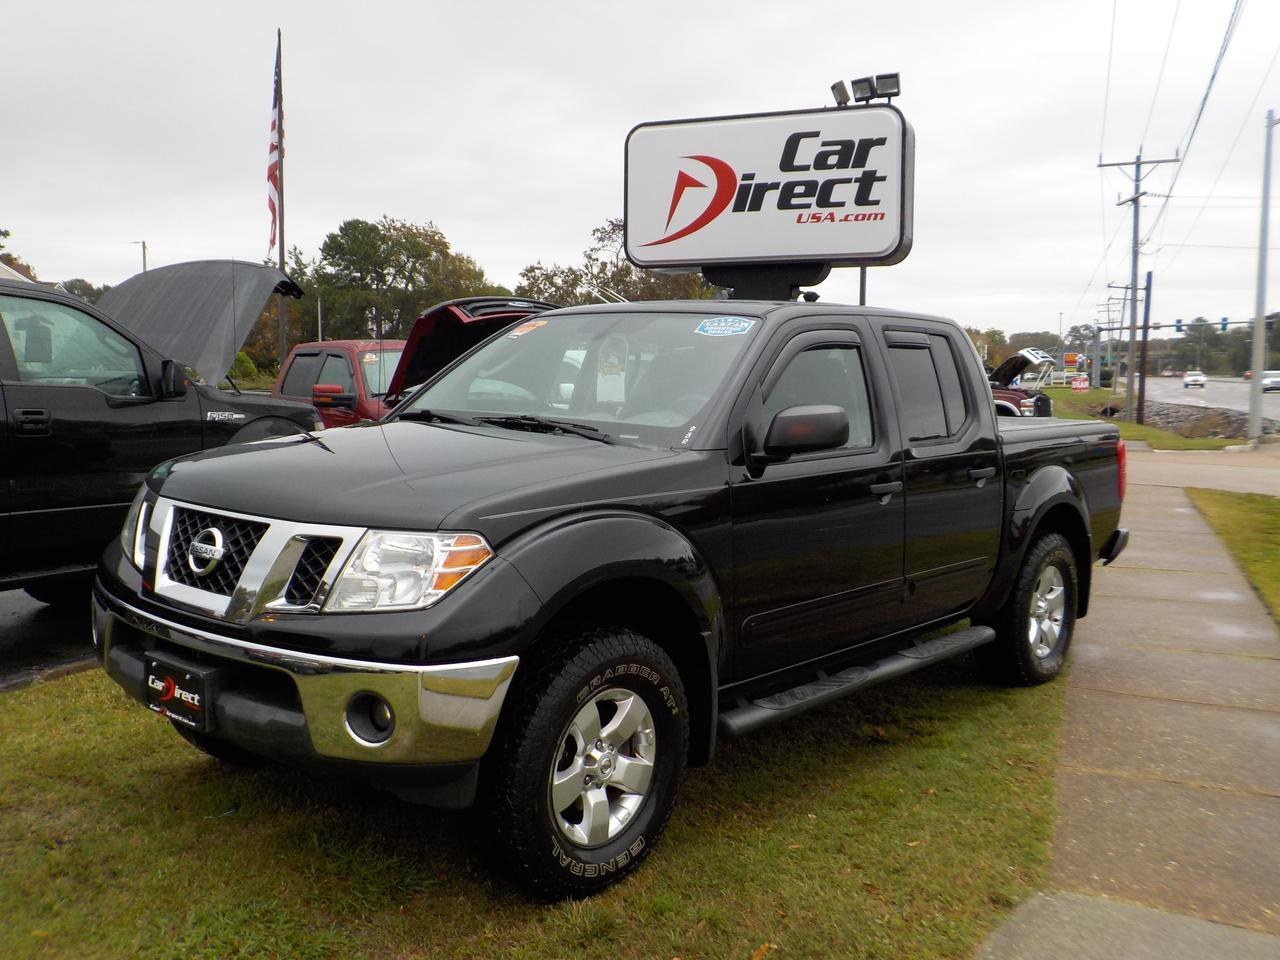 2010 NISSAN FRONTIER SE CREW CAB 4X4, WARRANTY, BLUETOOTH, BED LINER, SOFT TONNEAU COVER, KEYLESS ENTRY!!!